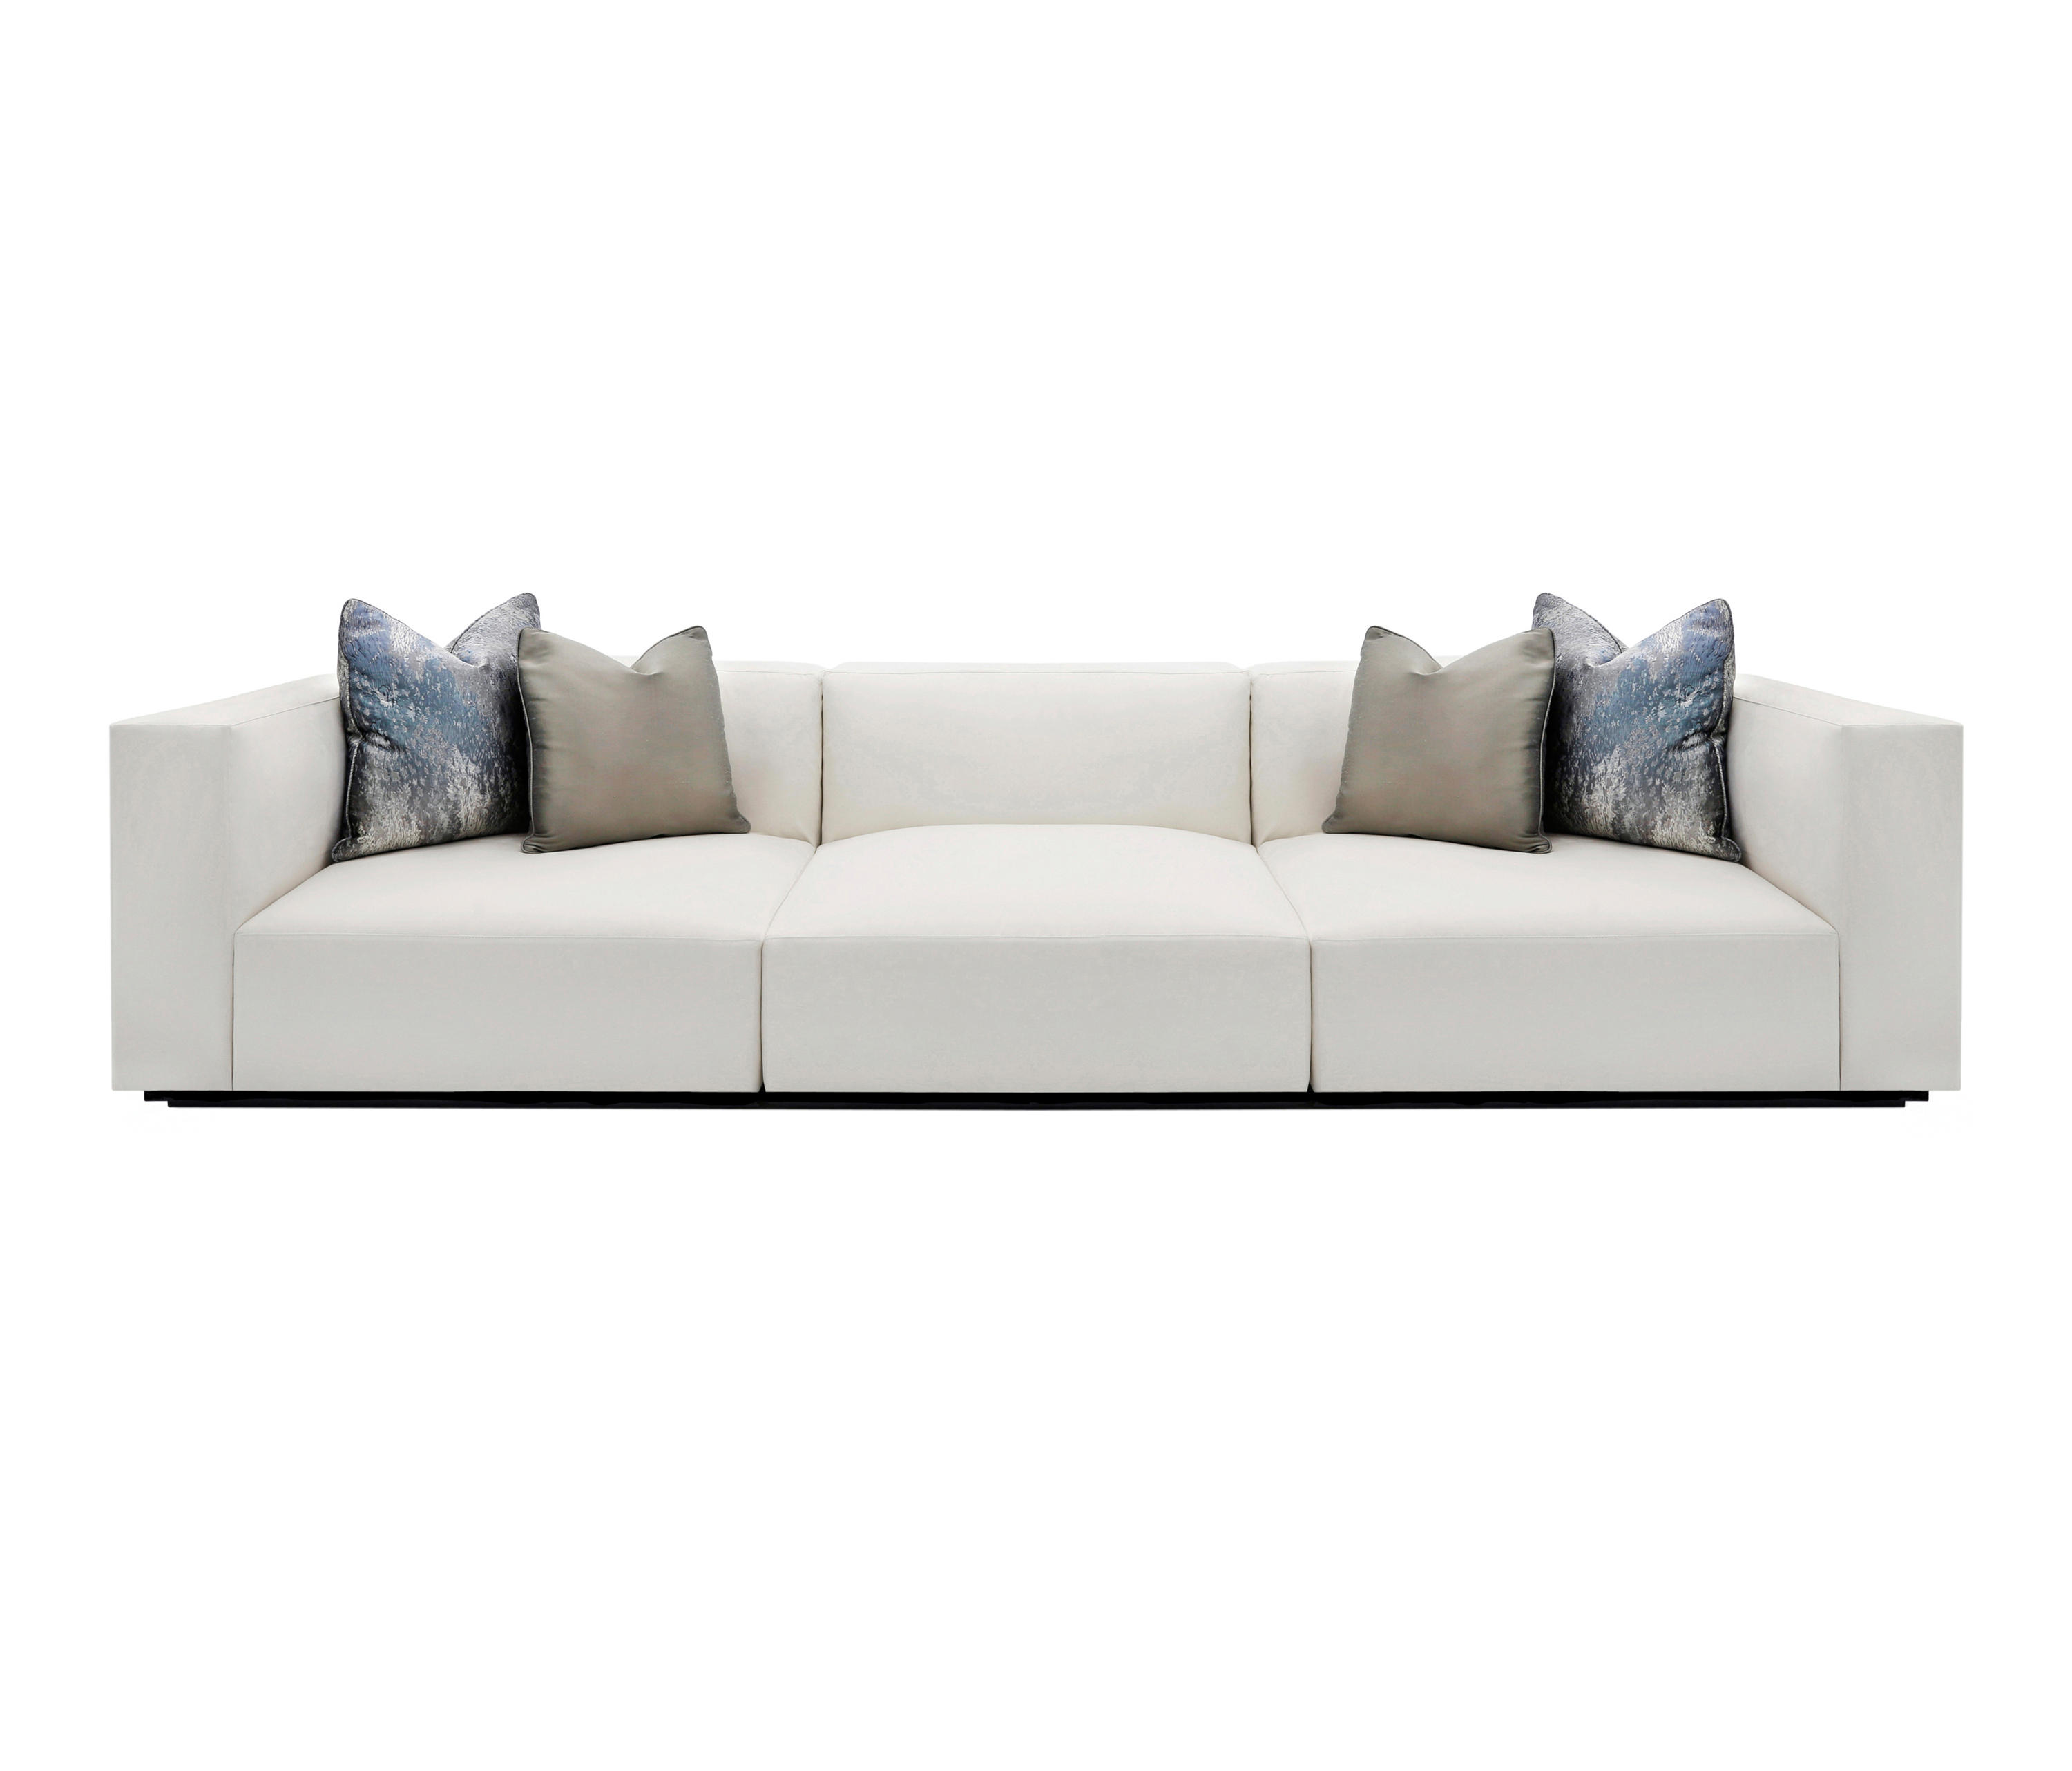 Hayward Large Sofa Designer Furniture